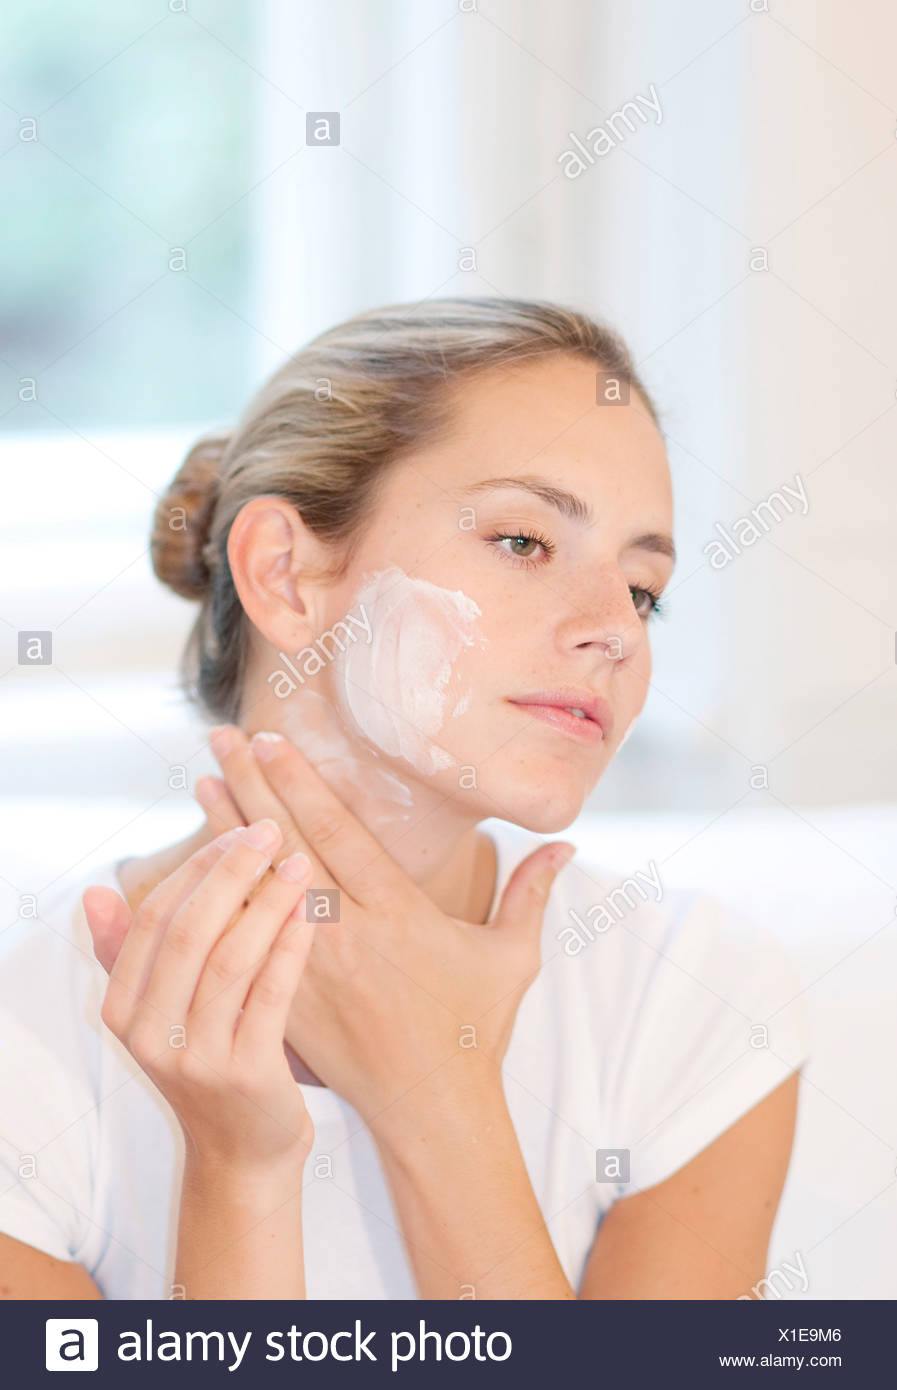 Female highlighted fair hair off her face, wearing a white t shirt, applying face cream to her cheeks and neck, unsmiling, - Stock Image